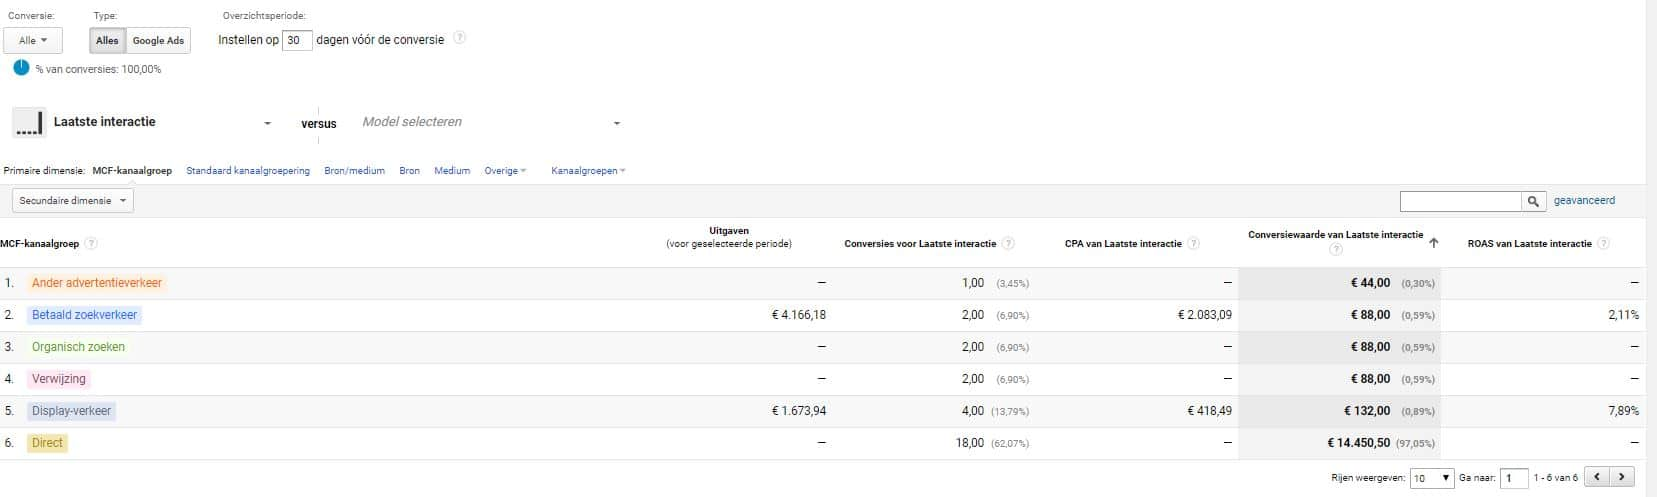 Google analytics attributen